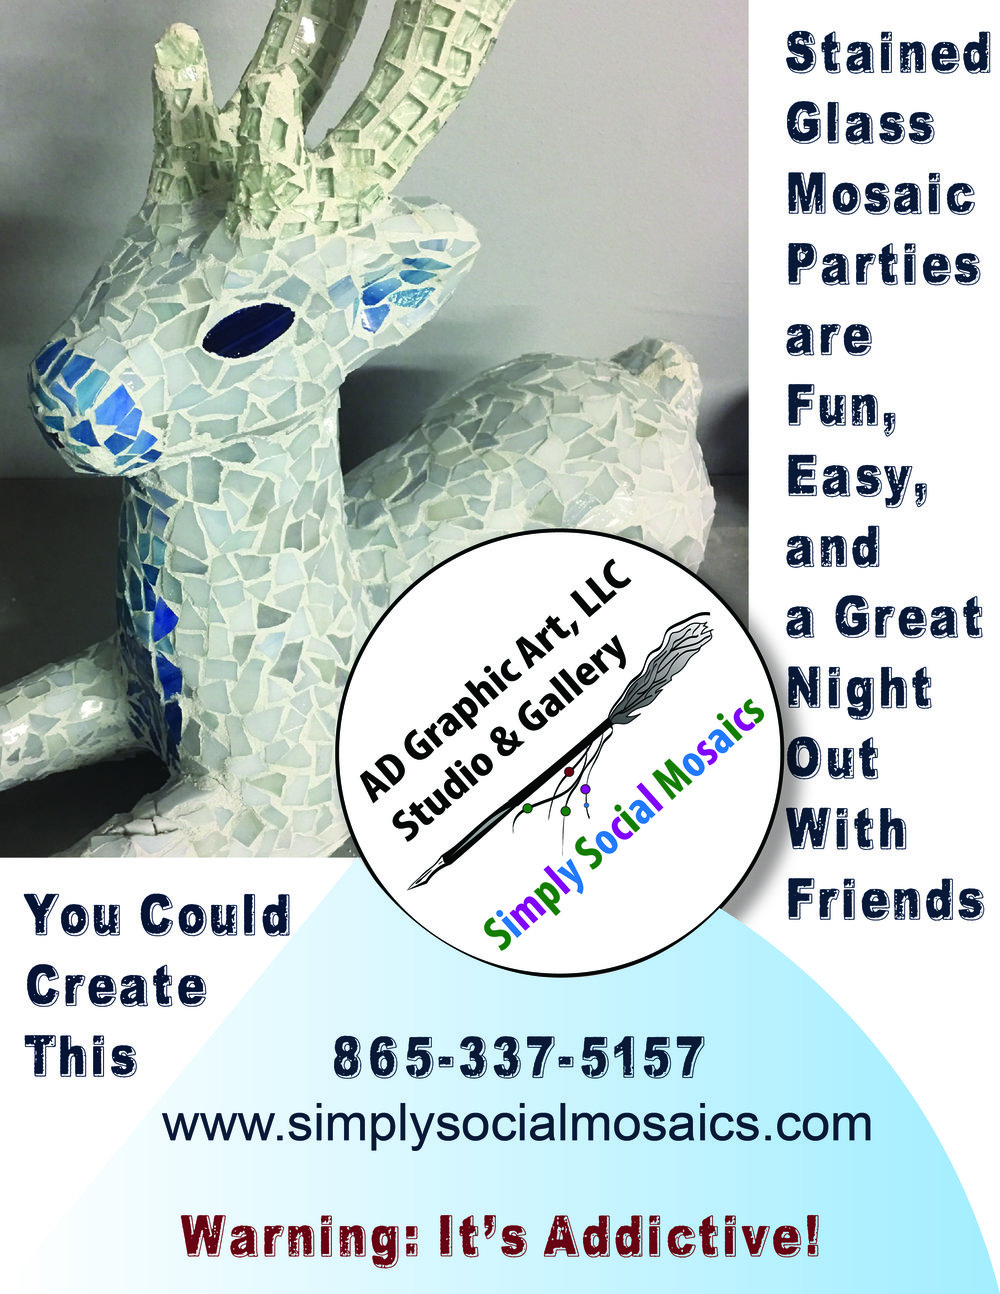 simplysocialmosaics flyer-01 - AD Graphic Art.jpg